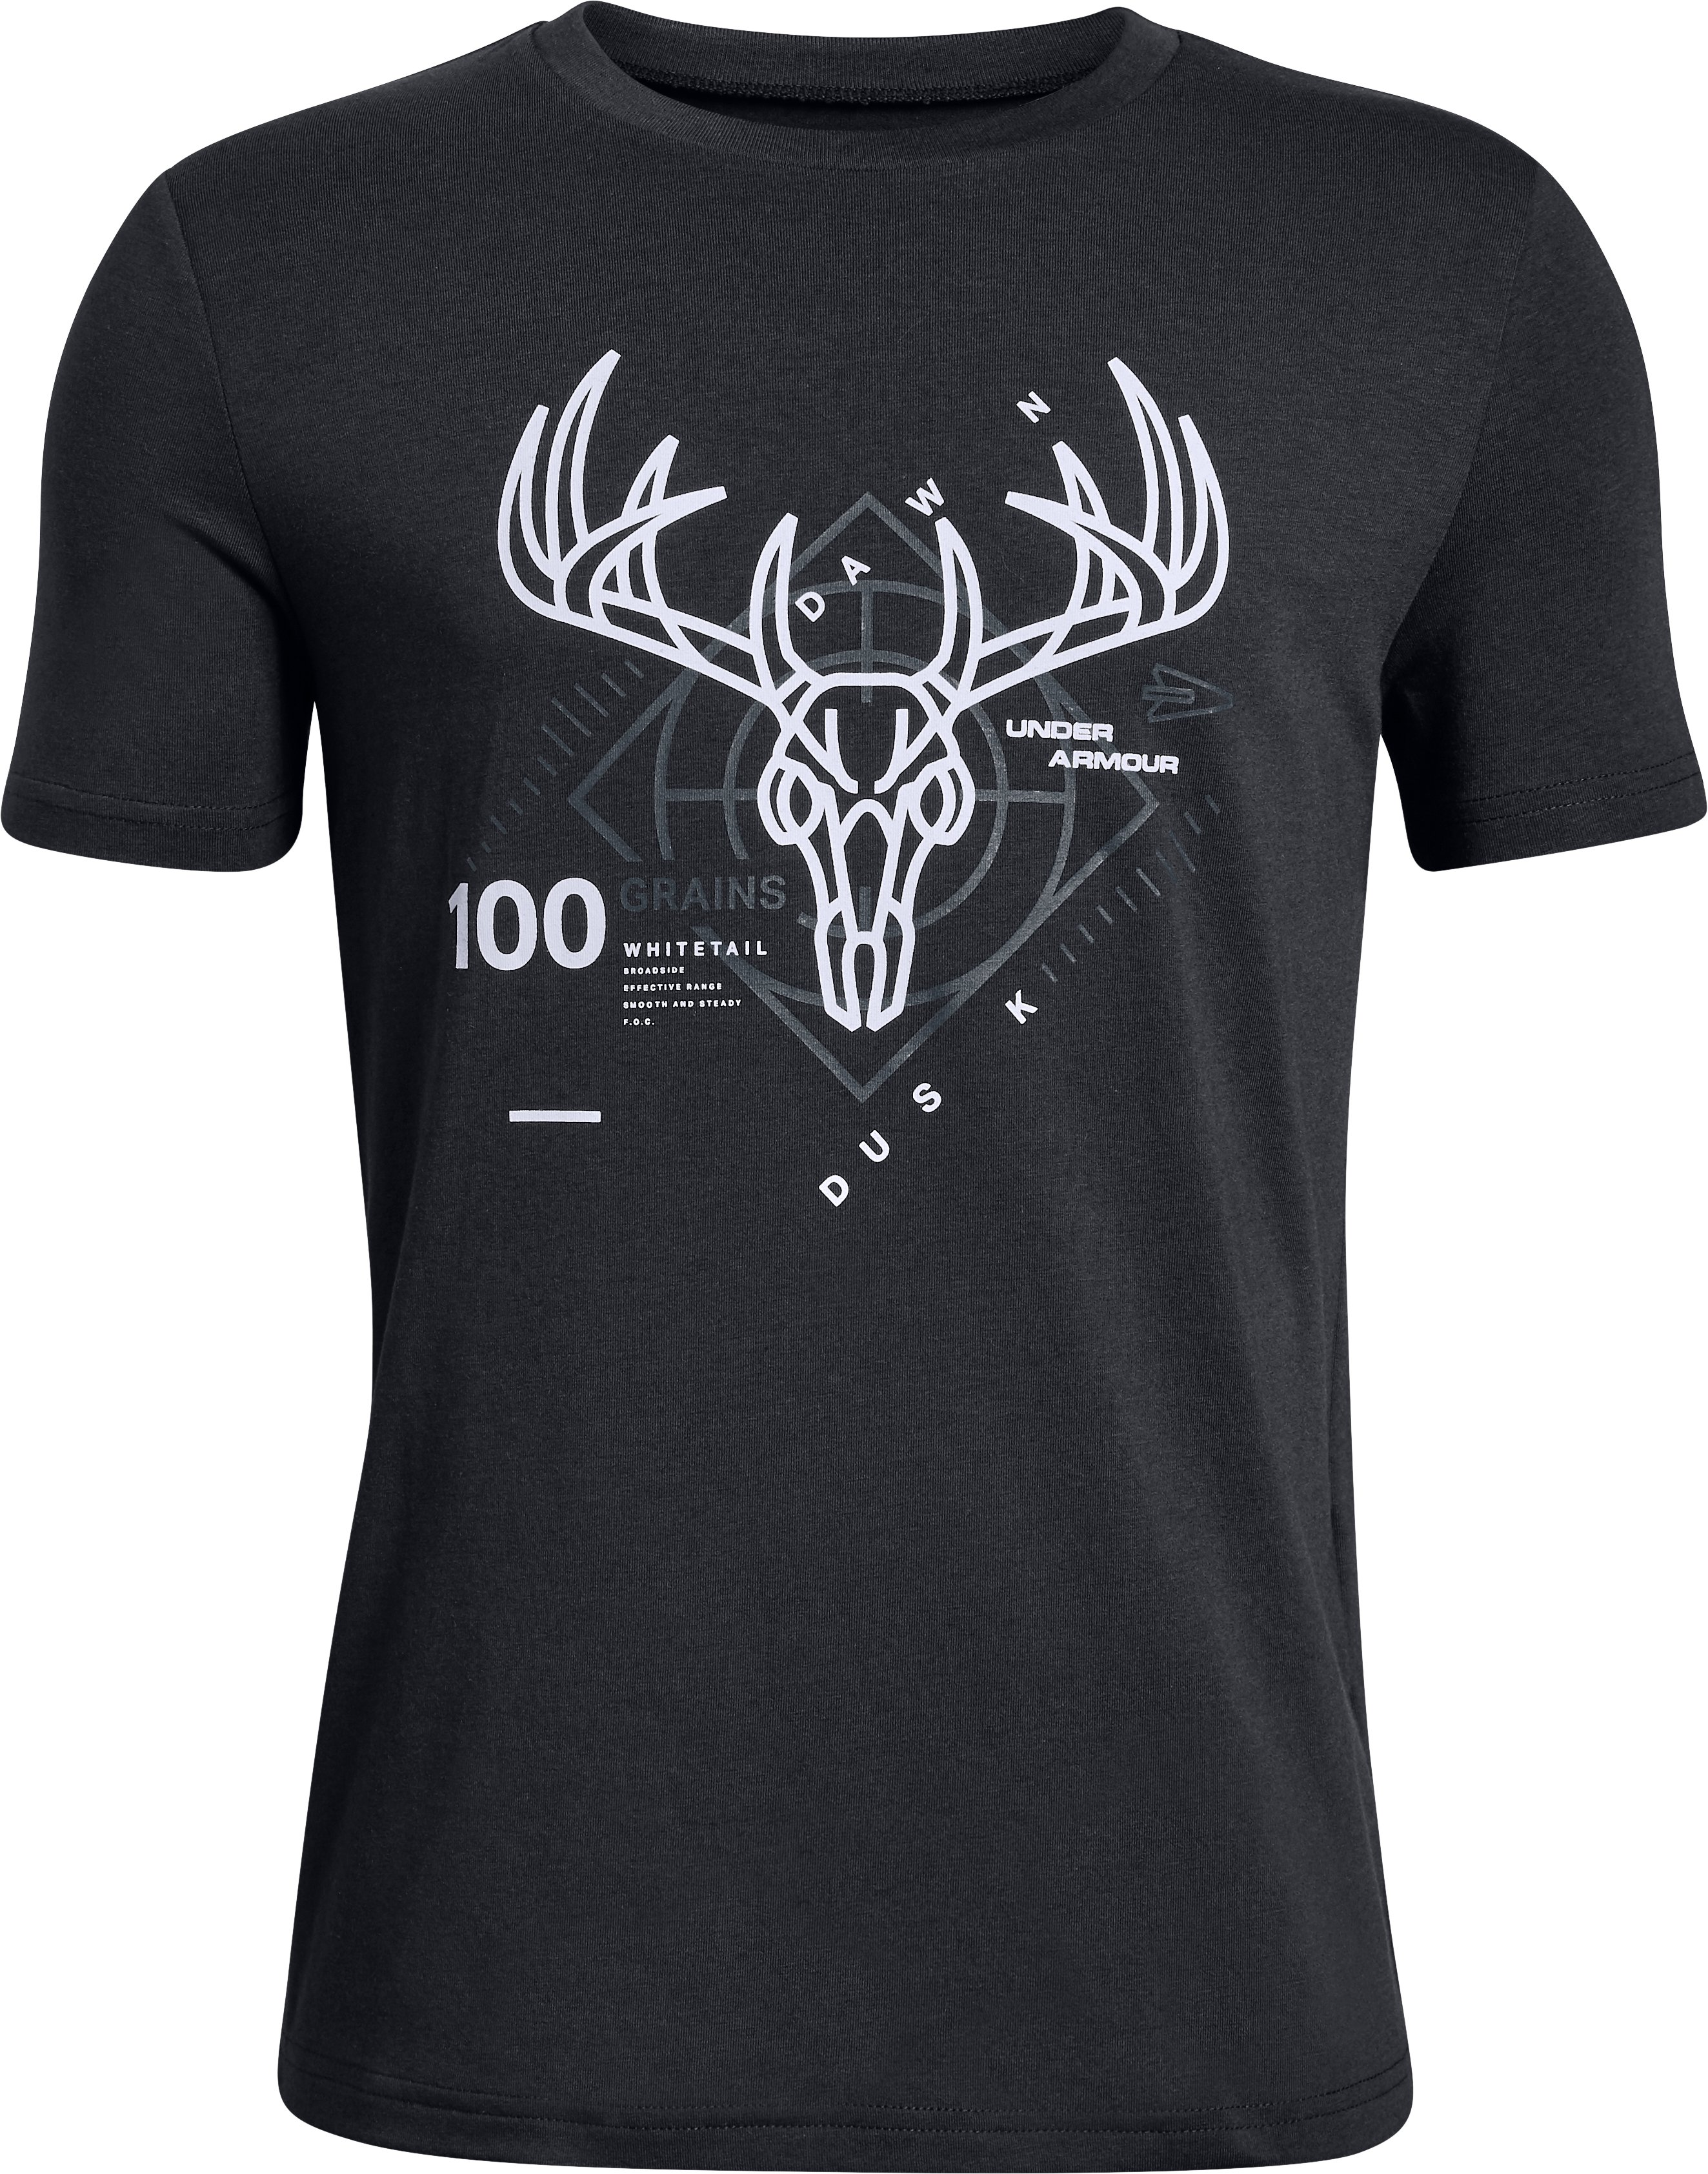 Boys' UA Heads Up Whitetail T-Shirt 2 Colors $20.00